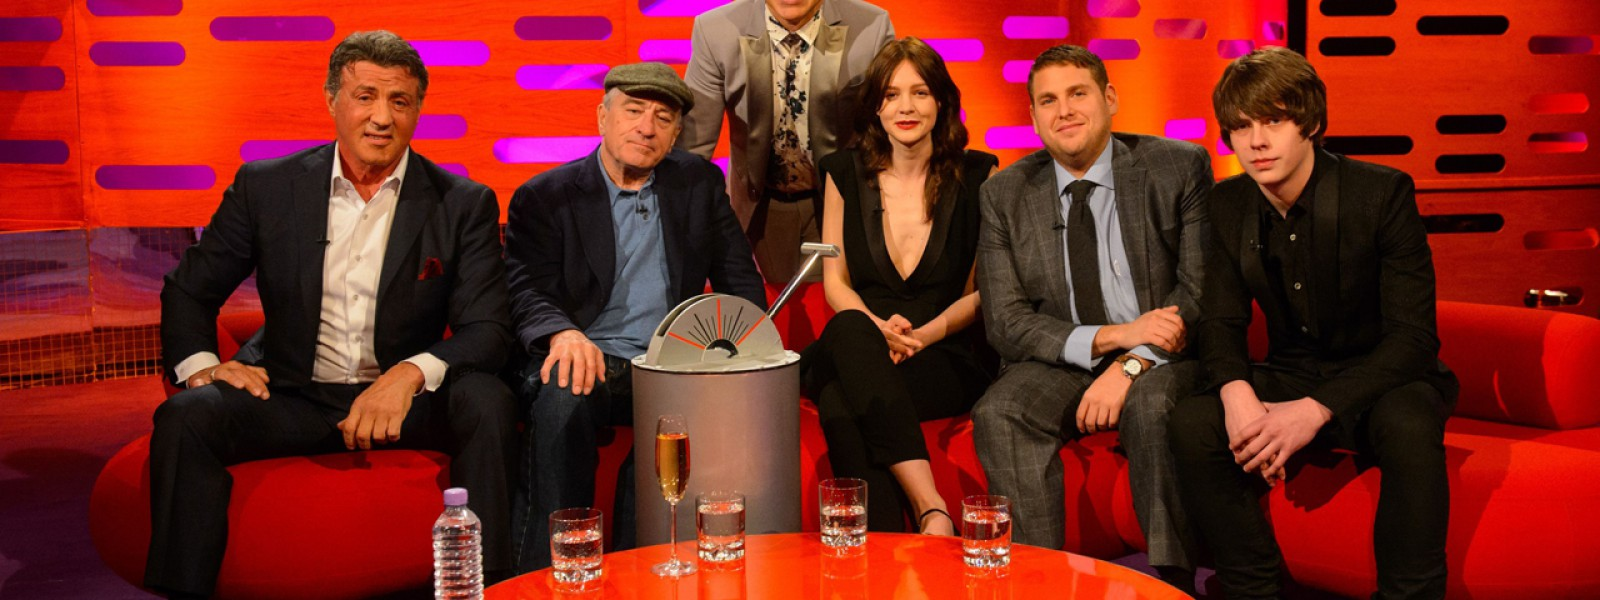 the-graham-norton-show-season-14-ep-11-1